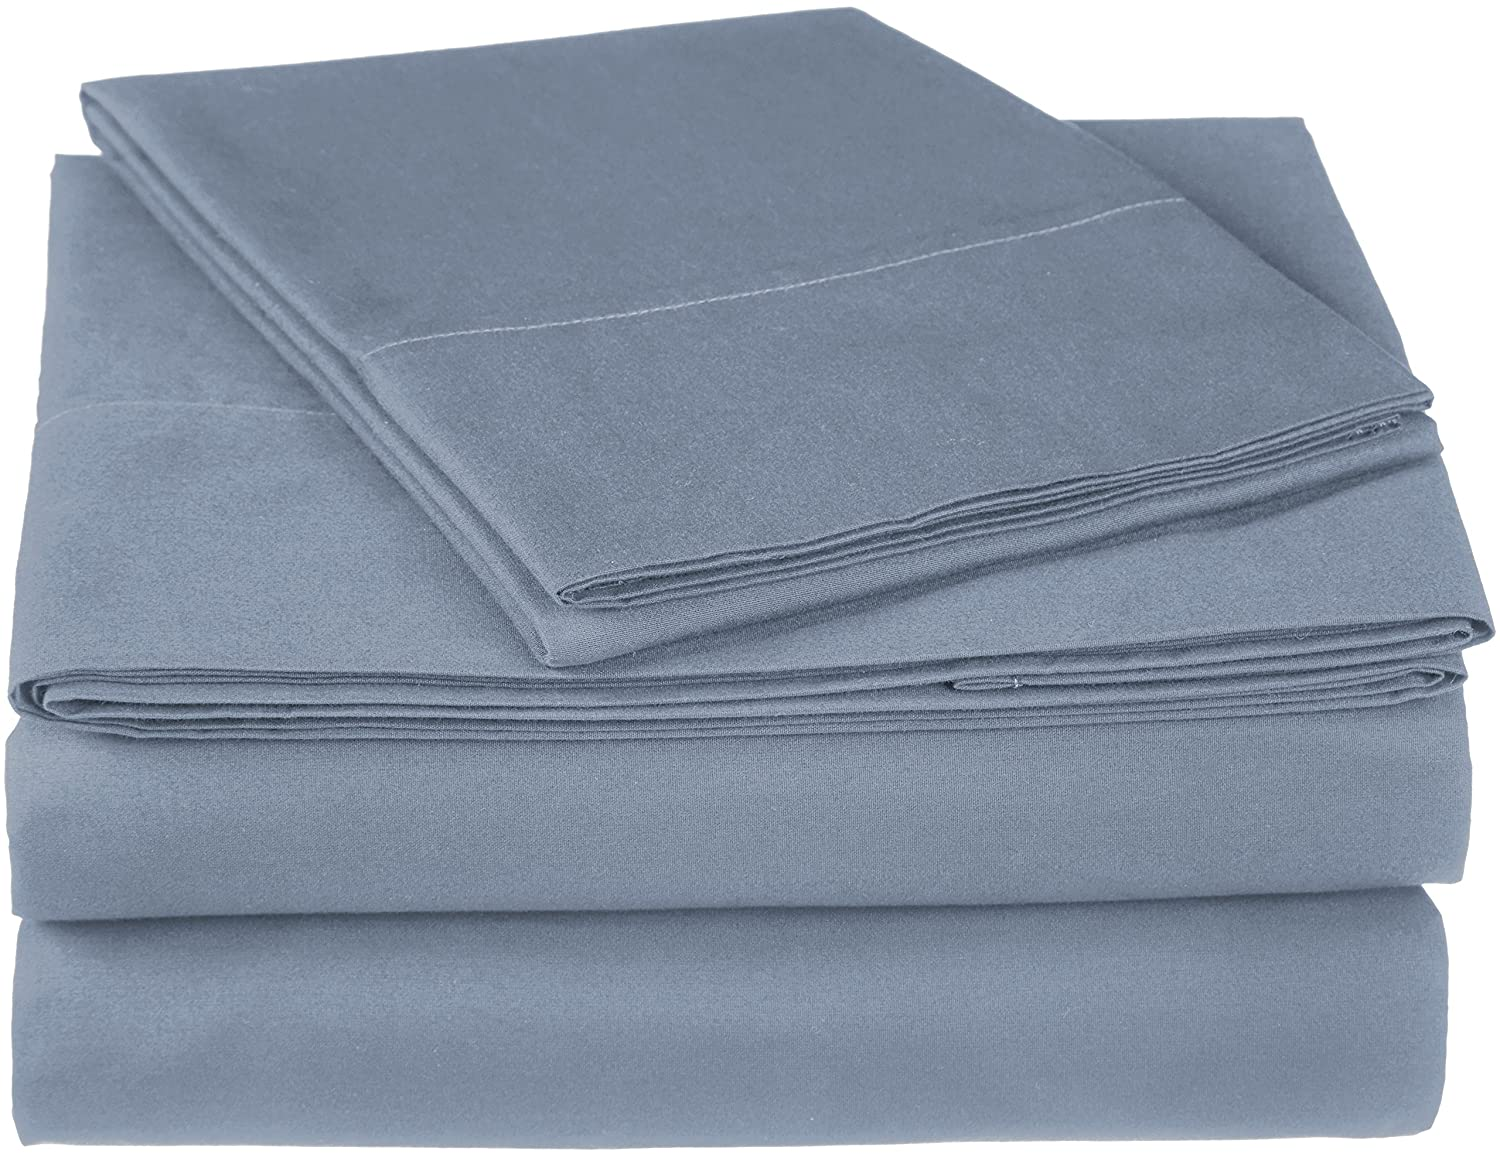 Pinzon 300 Thread Count Ultra Soft Cotton Sheet Set -Twin, Dusty Blue